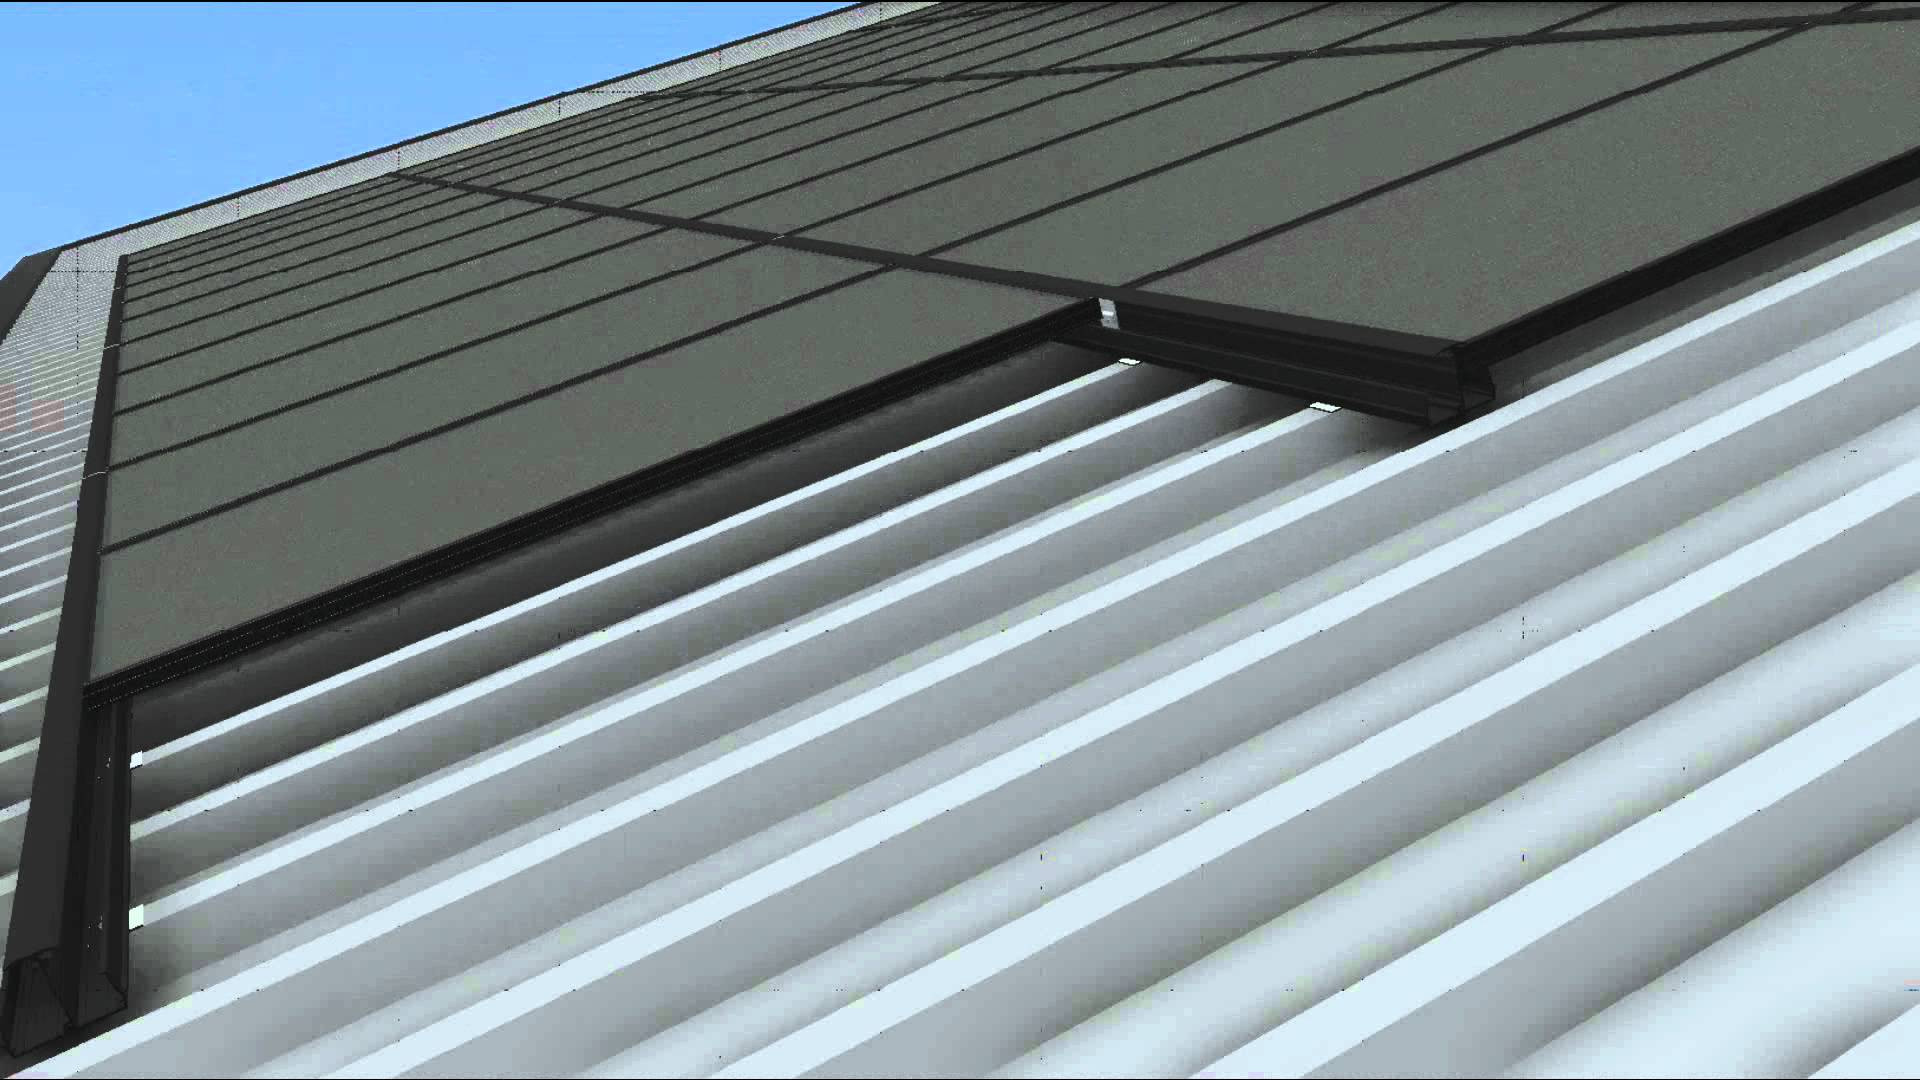 Roof Awesome Installing Corrugated Metal Roofing Wallpaper - Flat Metal Roof  Panel (#2056332) - HD Wallpaper & Backgrounds Download